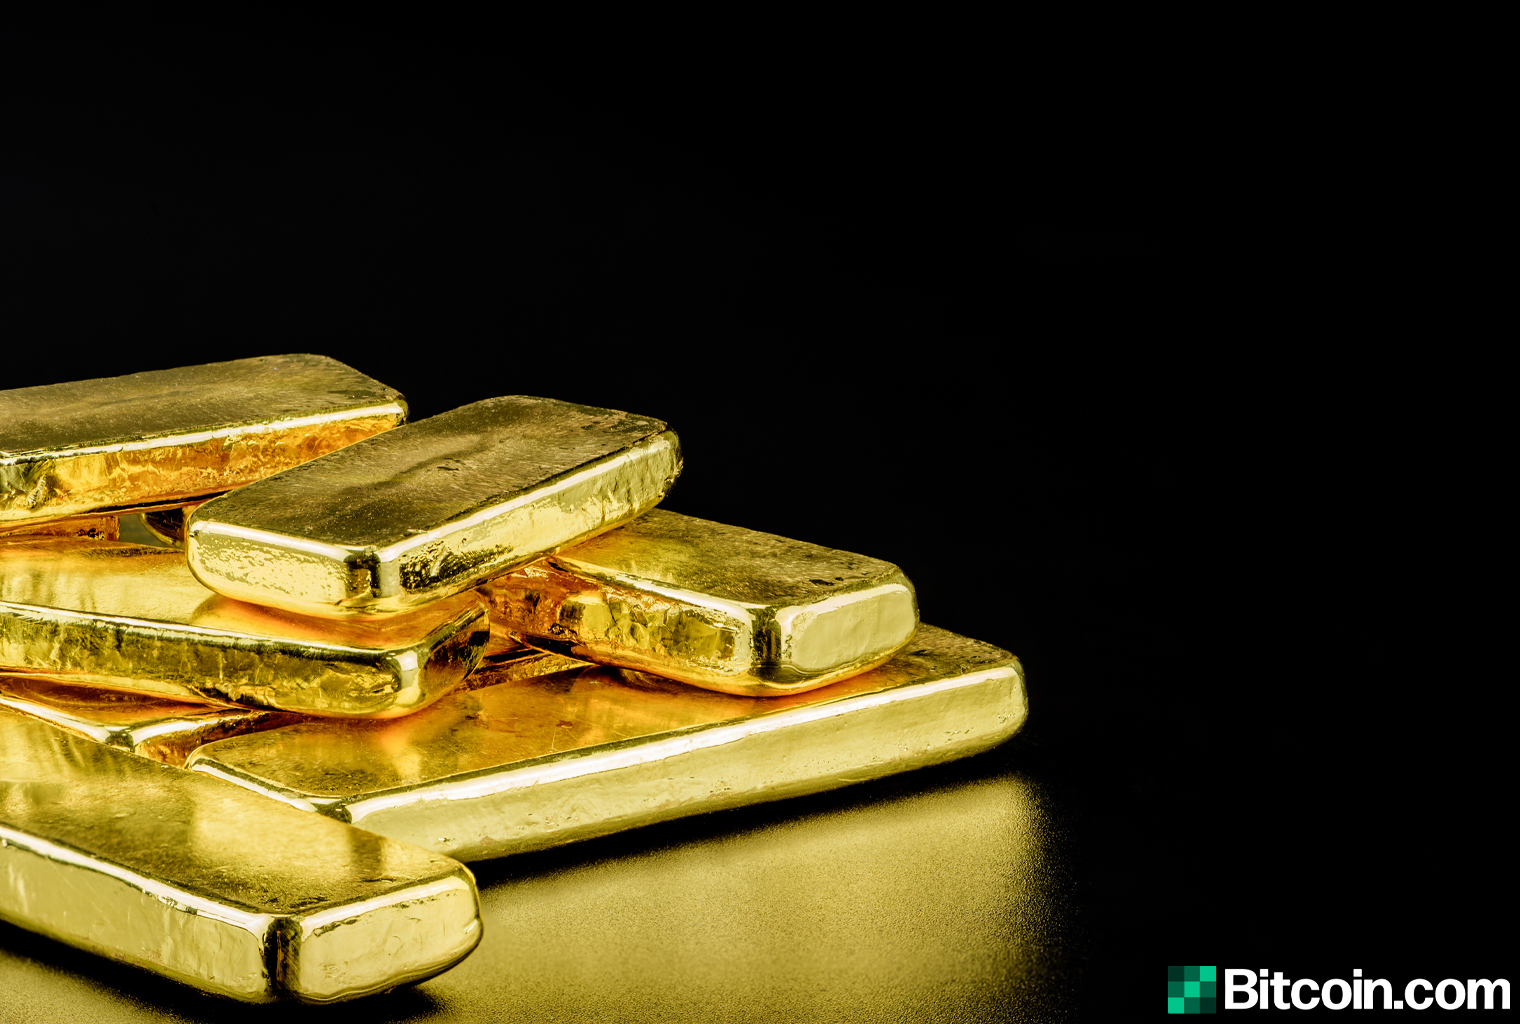 More Than 77 Crypto Projects Claim to Be Backed by Physical Gold